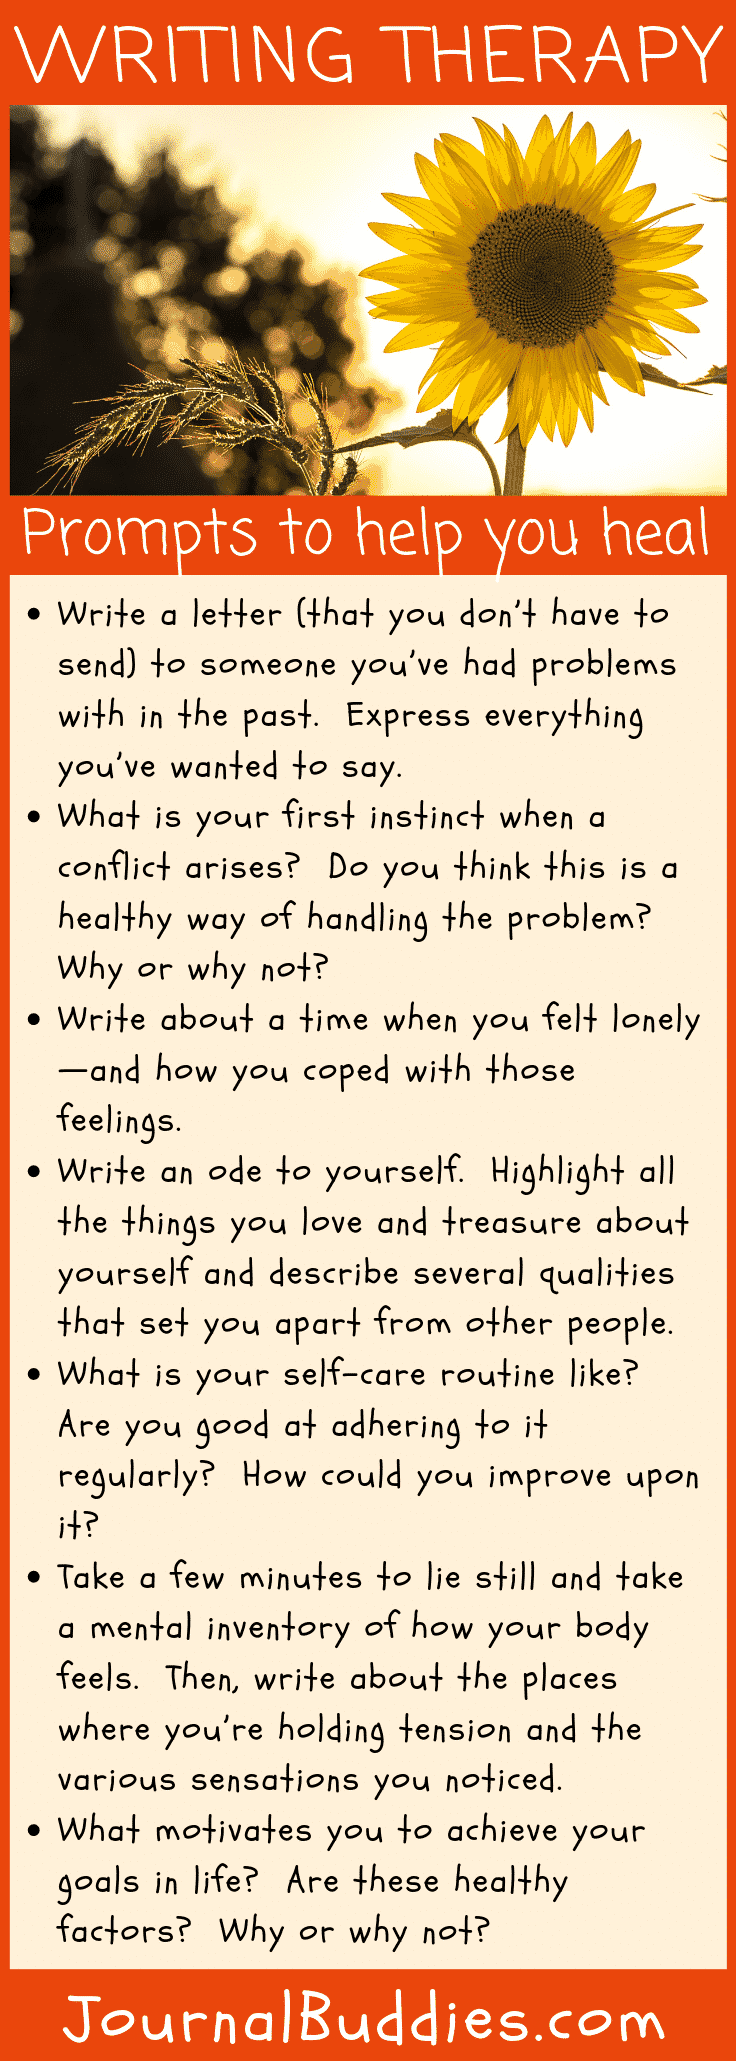 Writing Therapy Prompts and Ideas